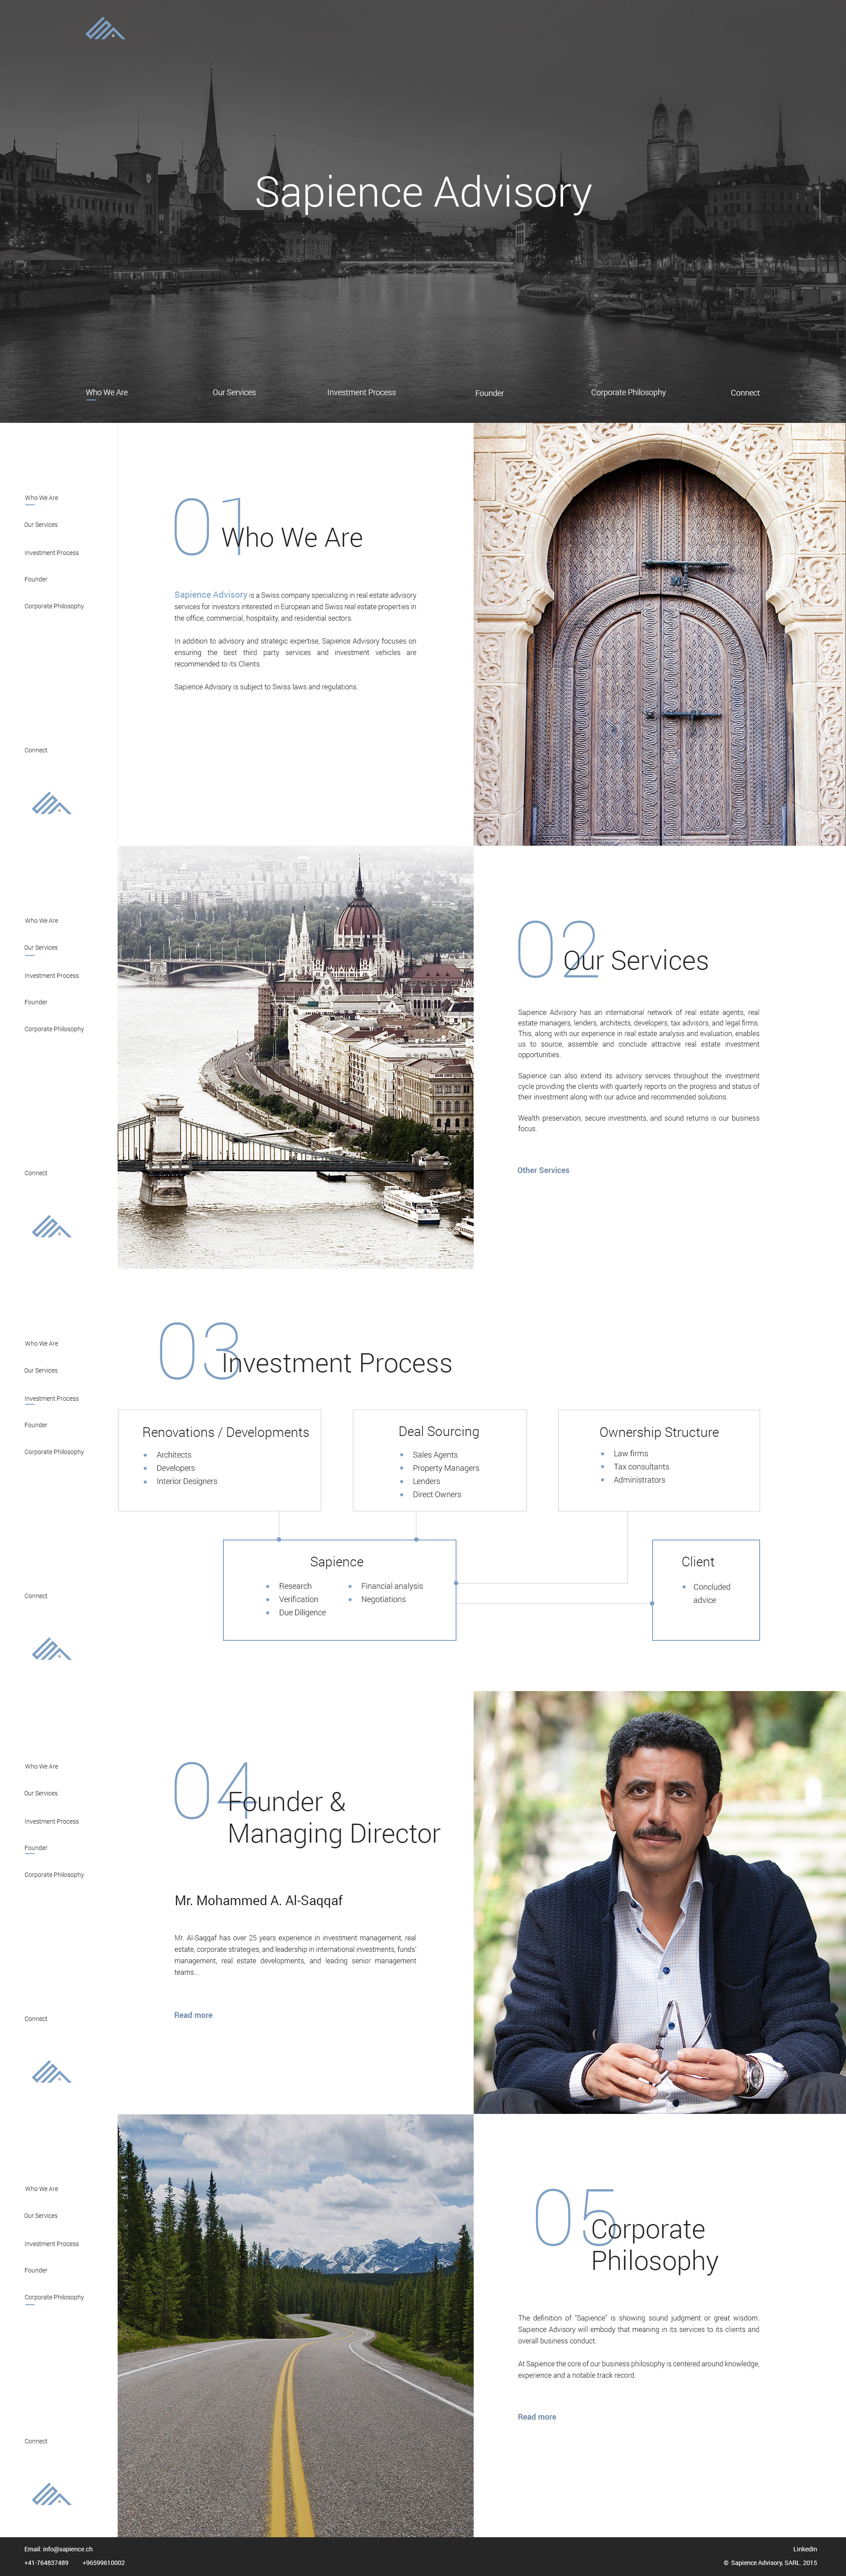 Sapience Advisory Web Design